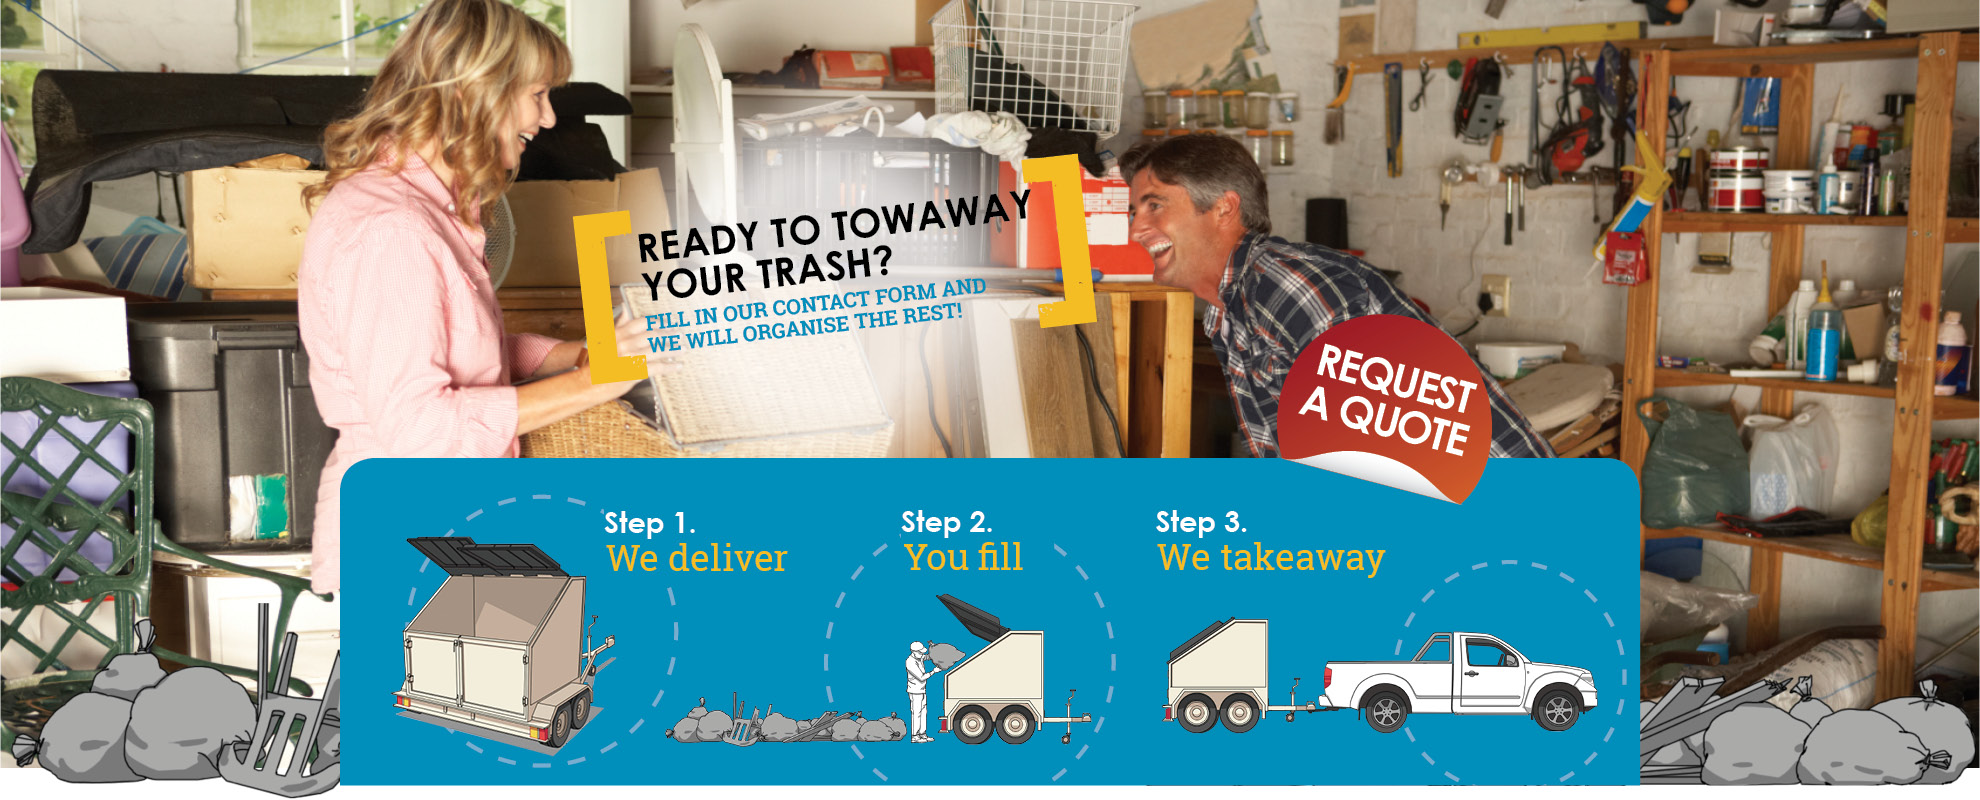 towaway trash, trailer skip bins, rubbish